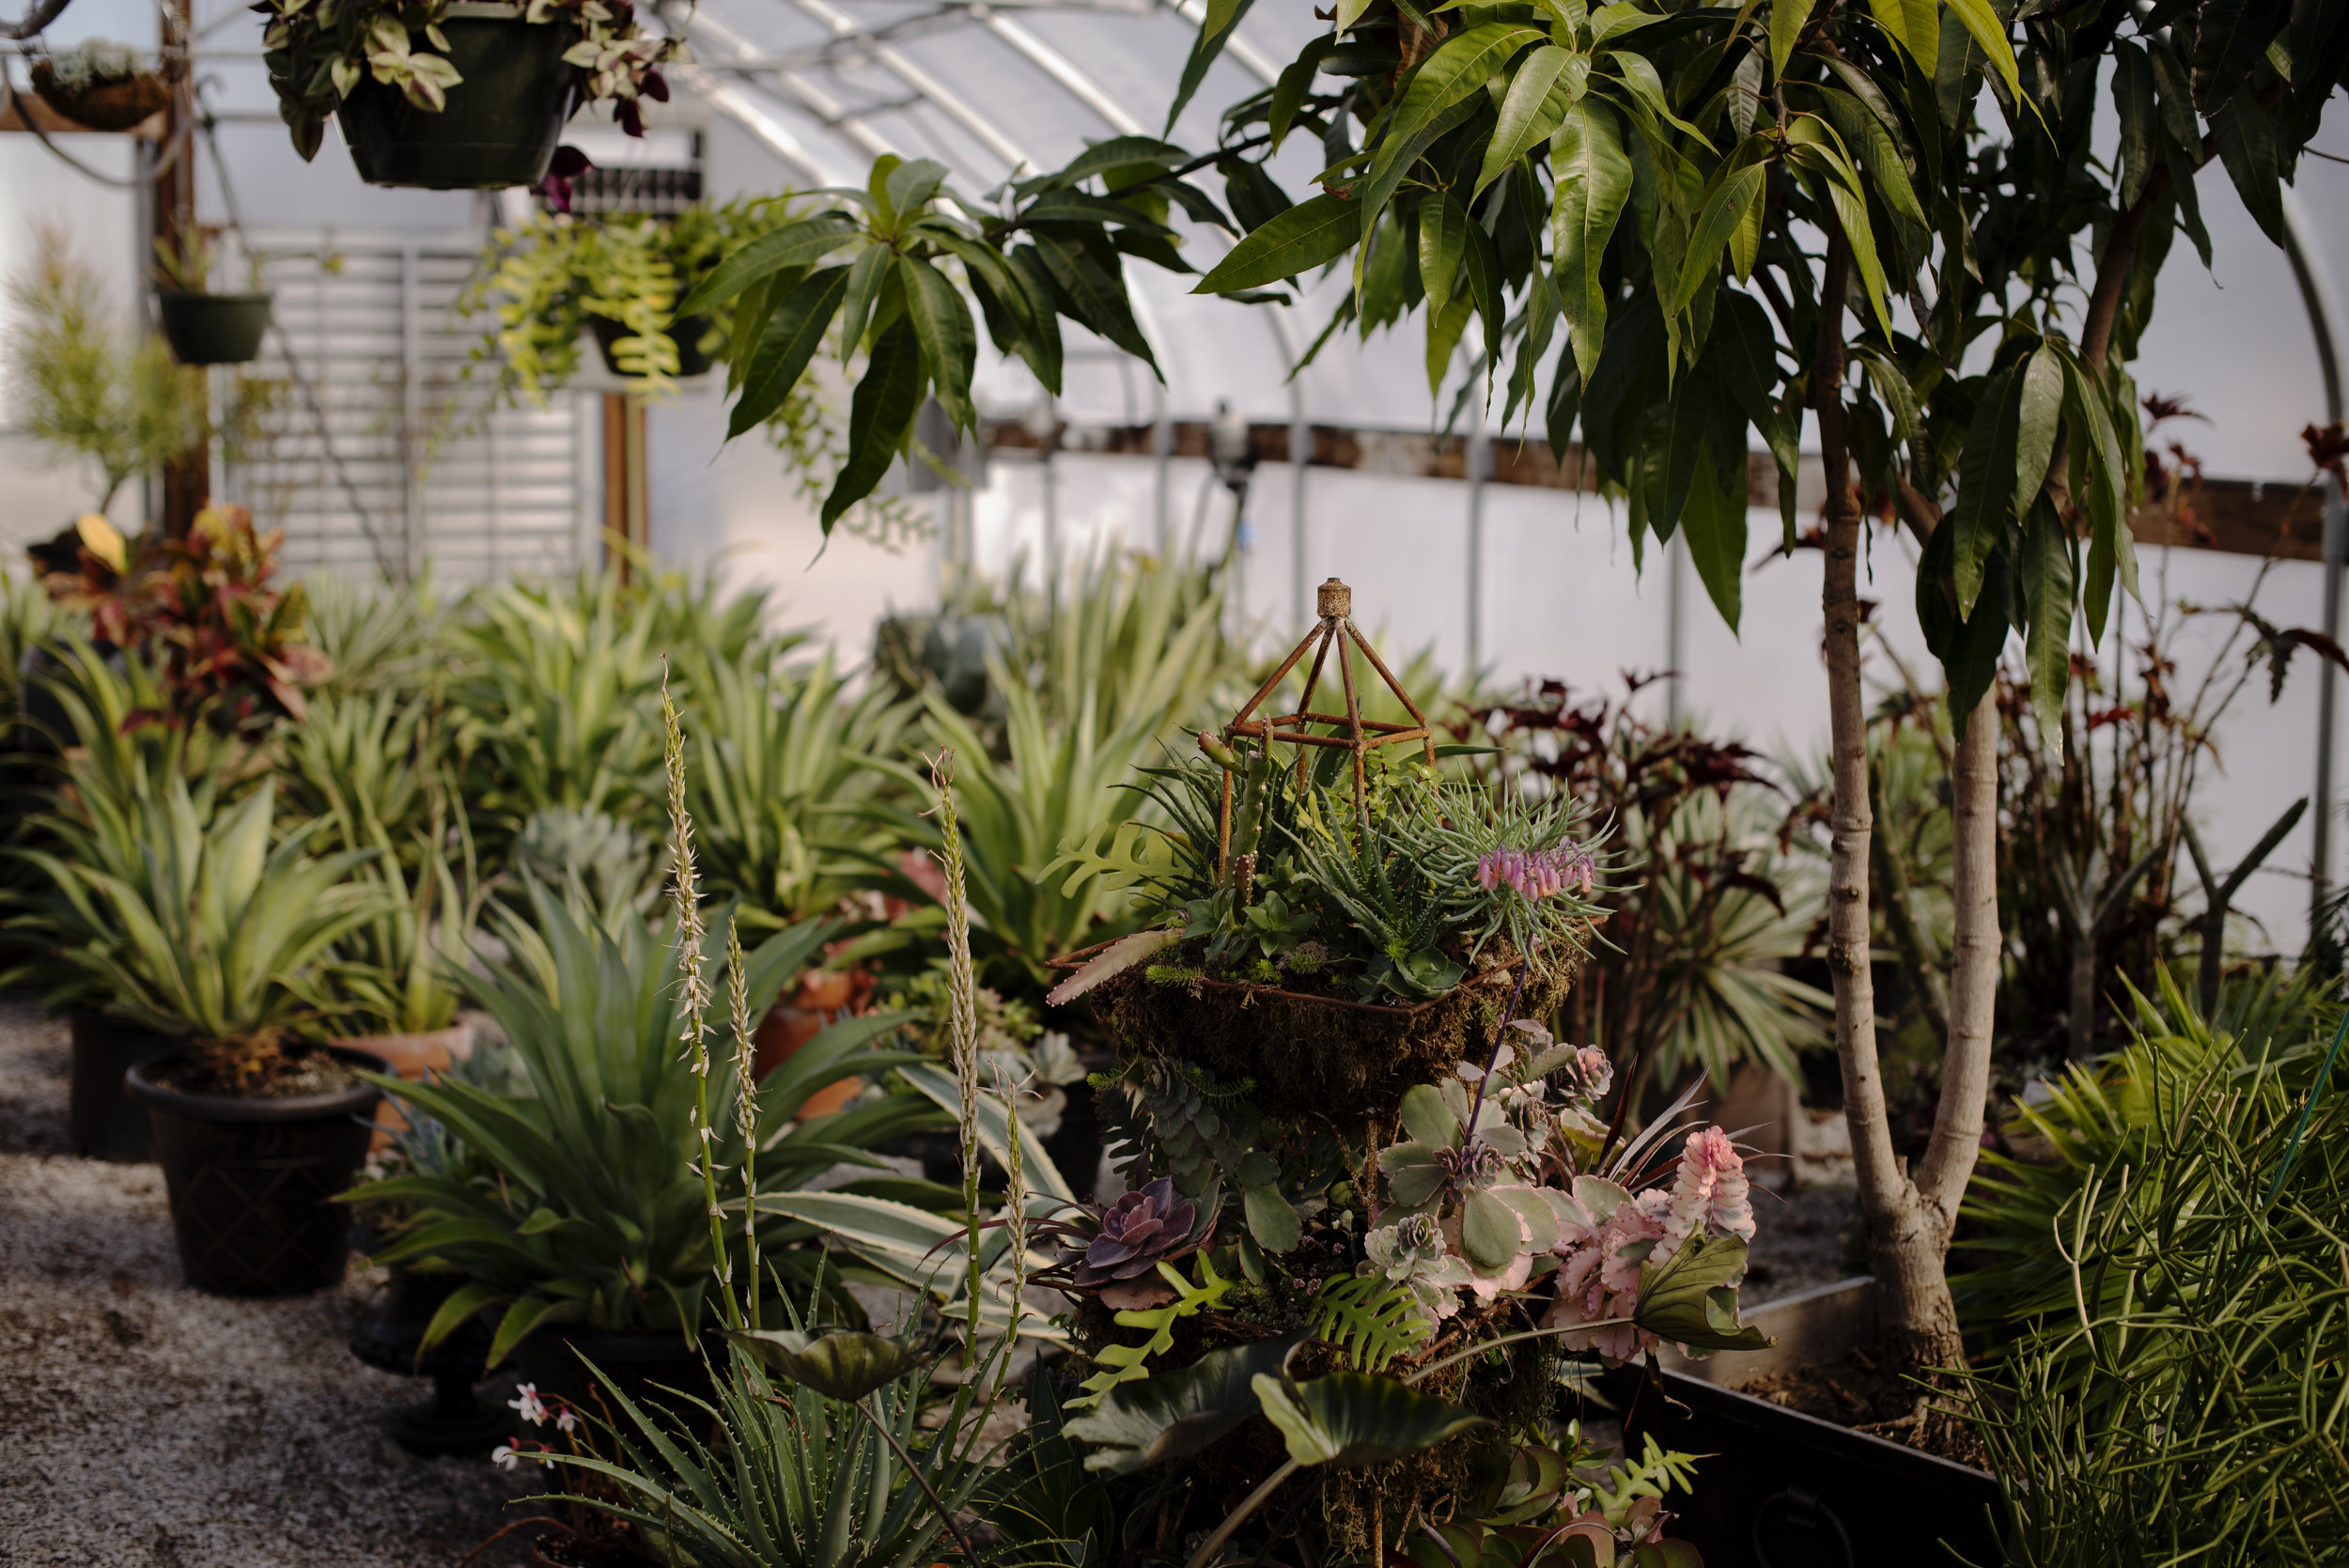 The two greenhouses housed on the Baker Arboretum land are maintained by horticulturalists Rickman Freeman and Dennis Williams. Both Freeman and Williams have maintained the arboretum property for five years.